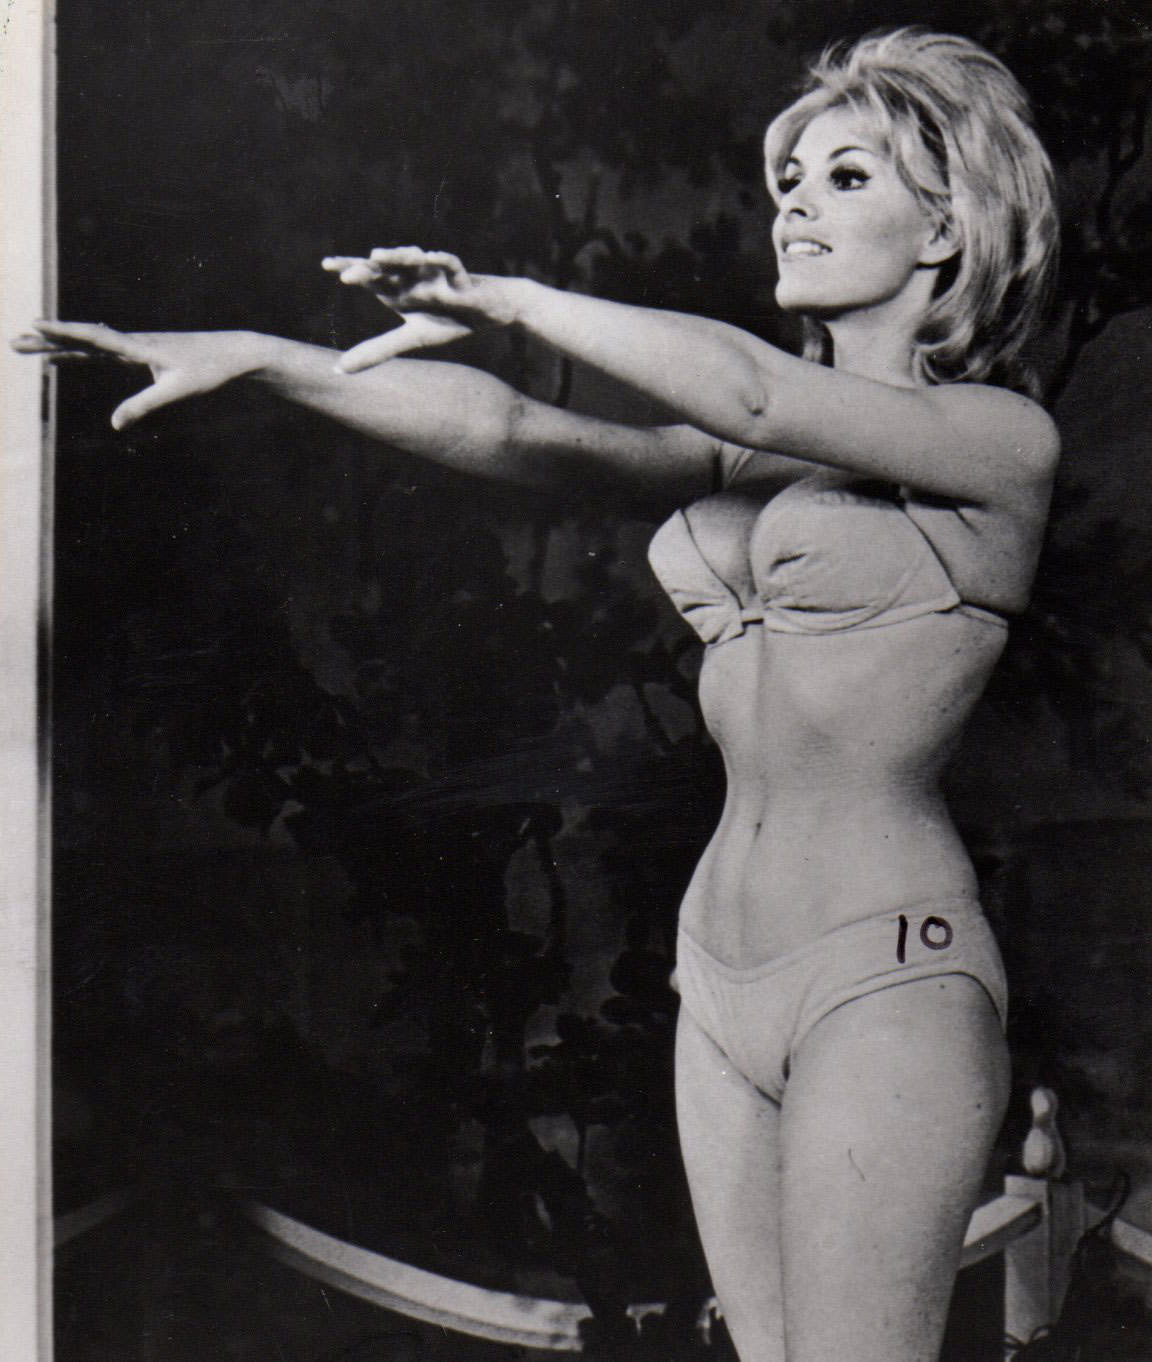 June Wilkinson doing some stretches, 1960s